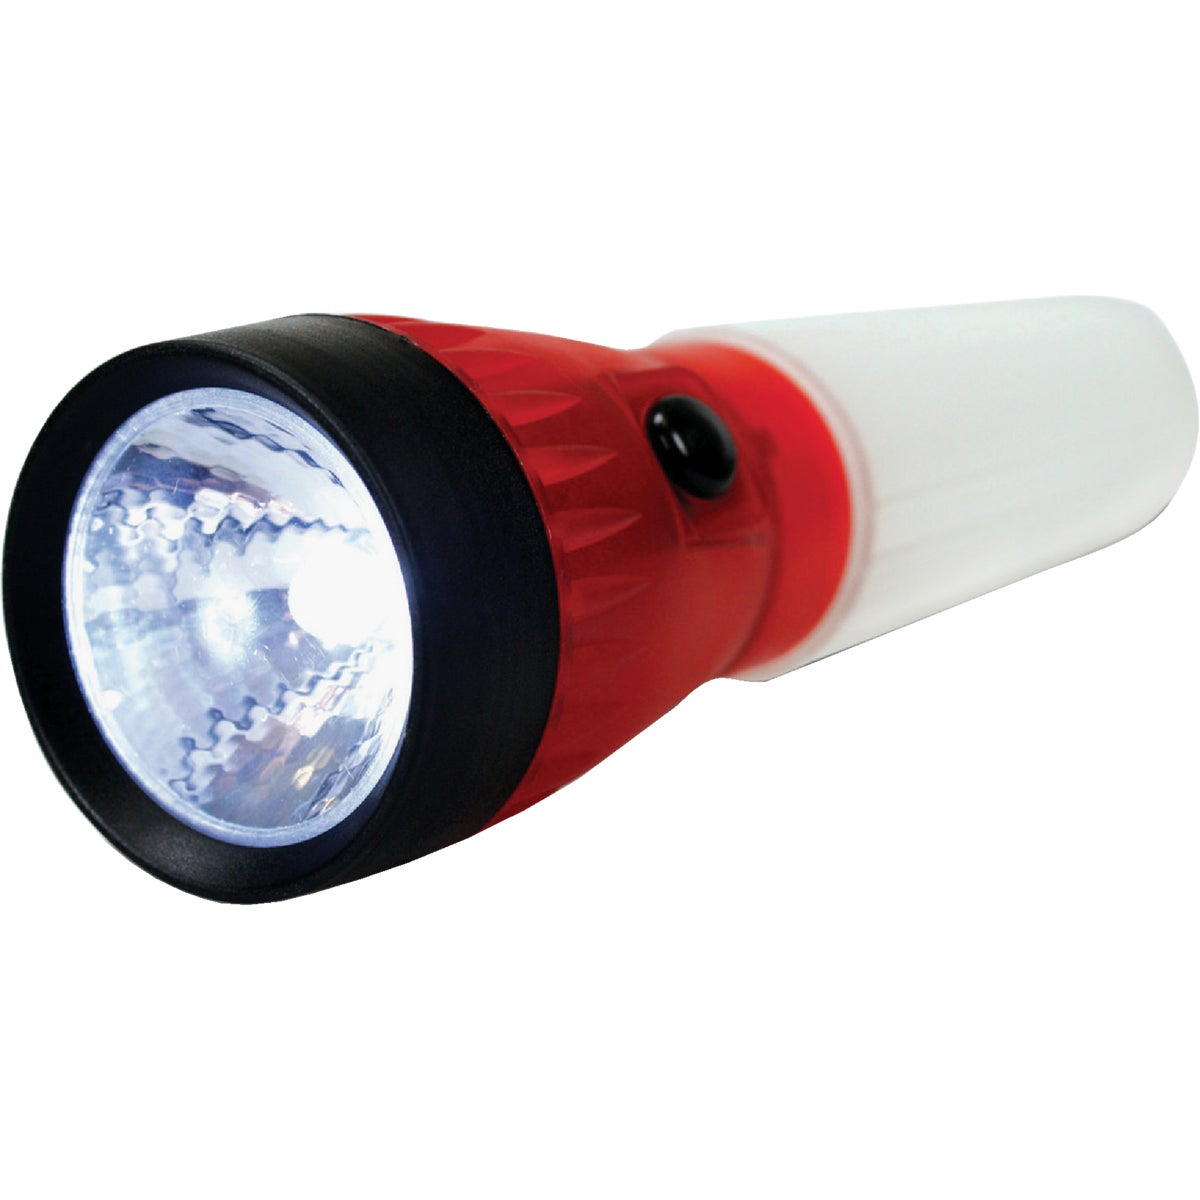 RED GLOW LED FLASHLIGHT - LG141 by Life Gear